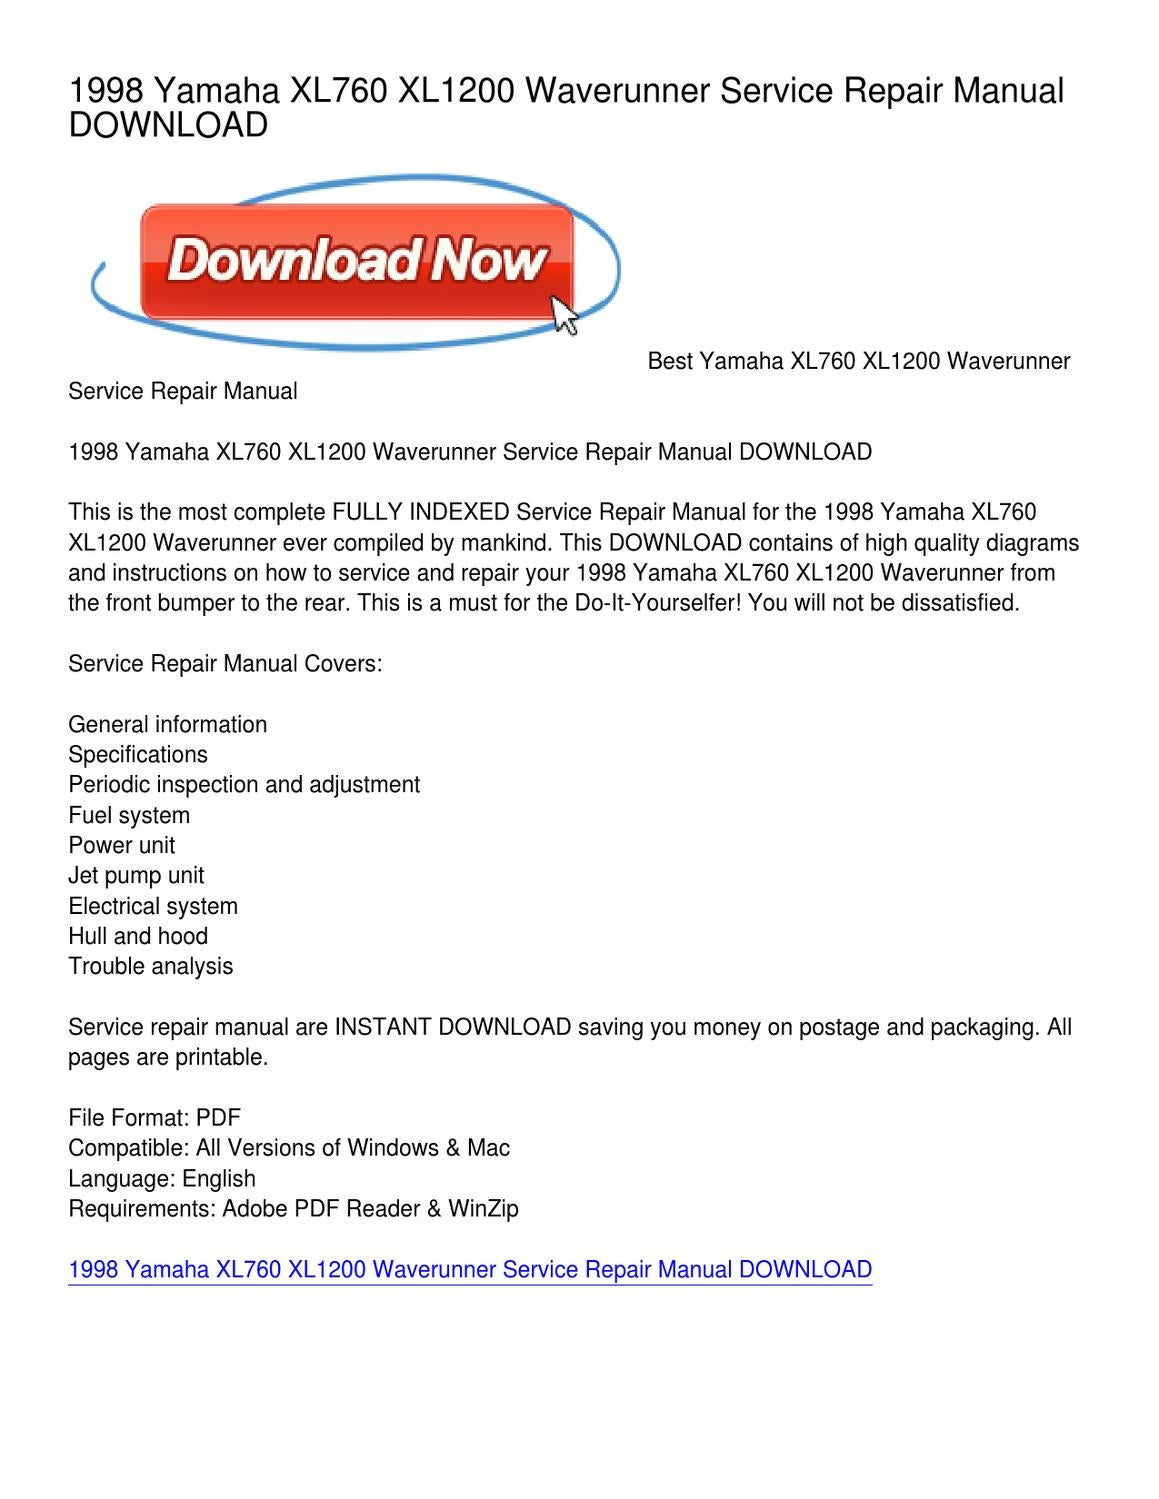 1998 Yamaha XL760 XL1200 Waverunner Service Repair Manual DOWNLOAD by  Michael King - issuu